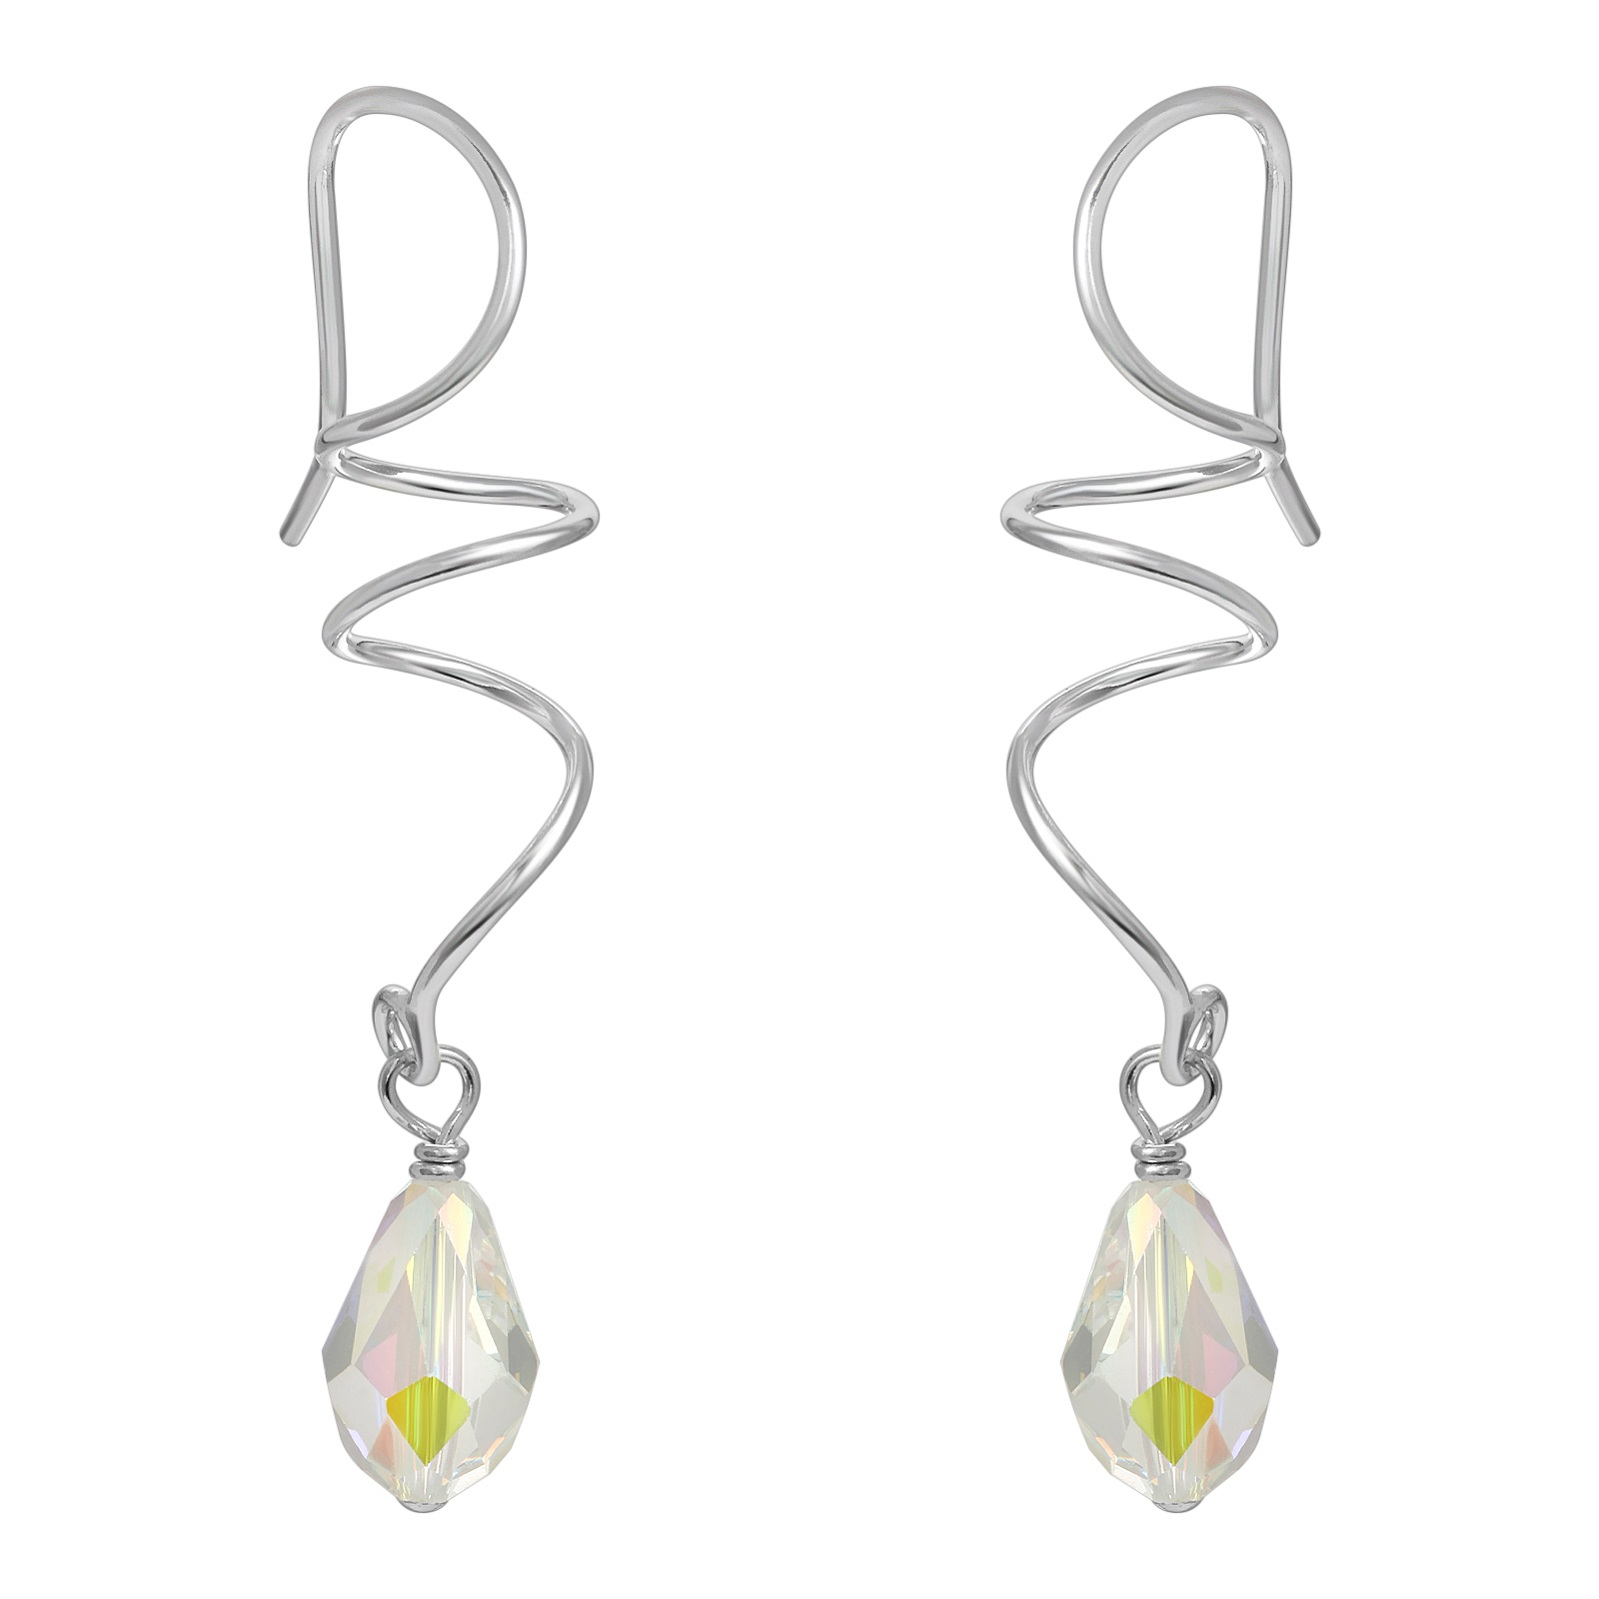 Silver Twirl Crystal Earrings - Clear AB